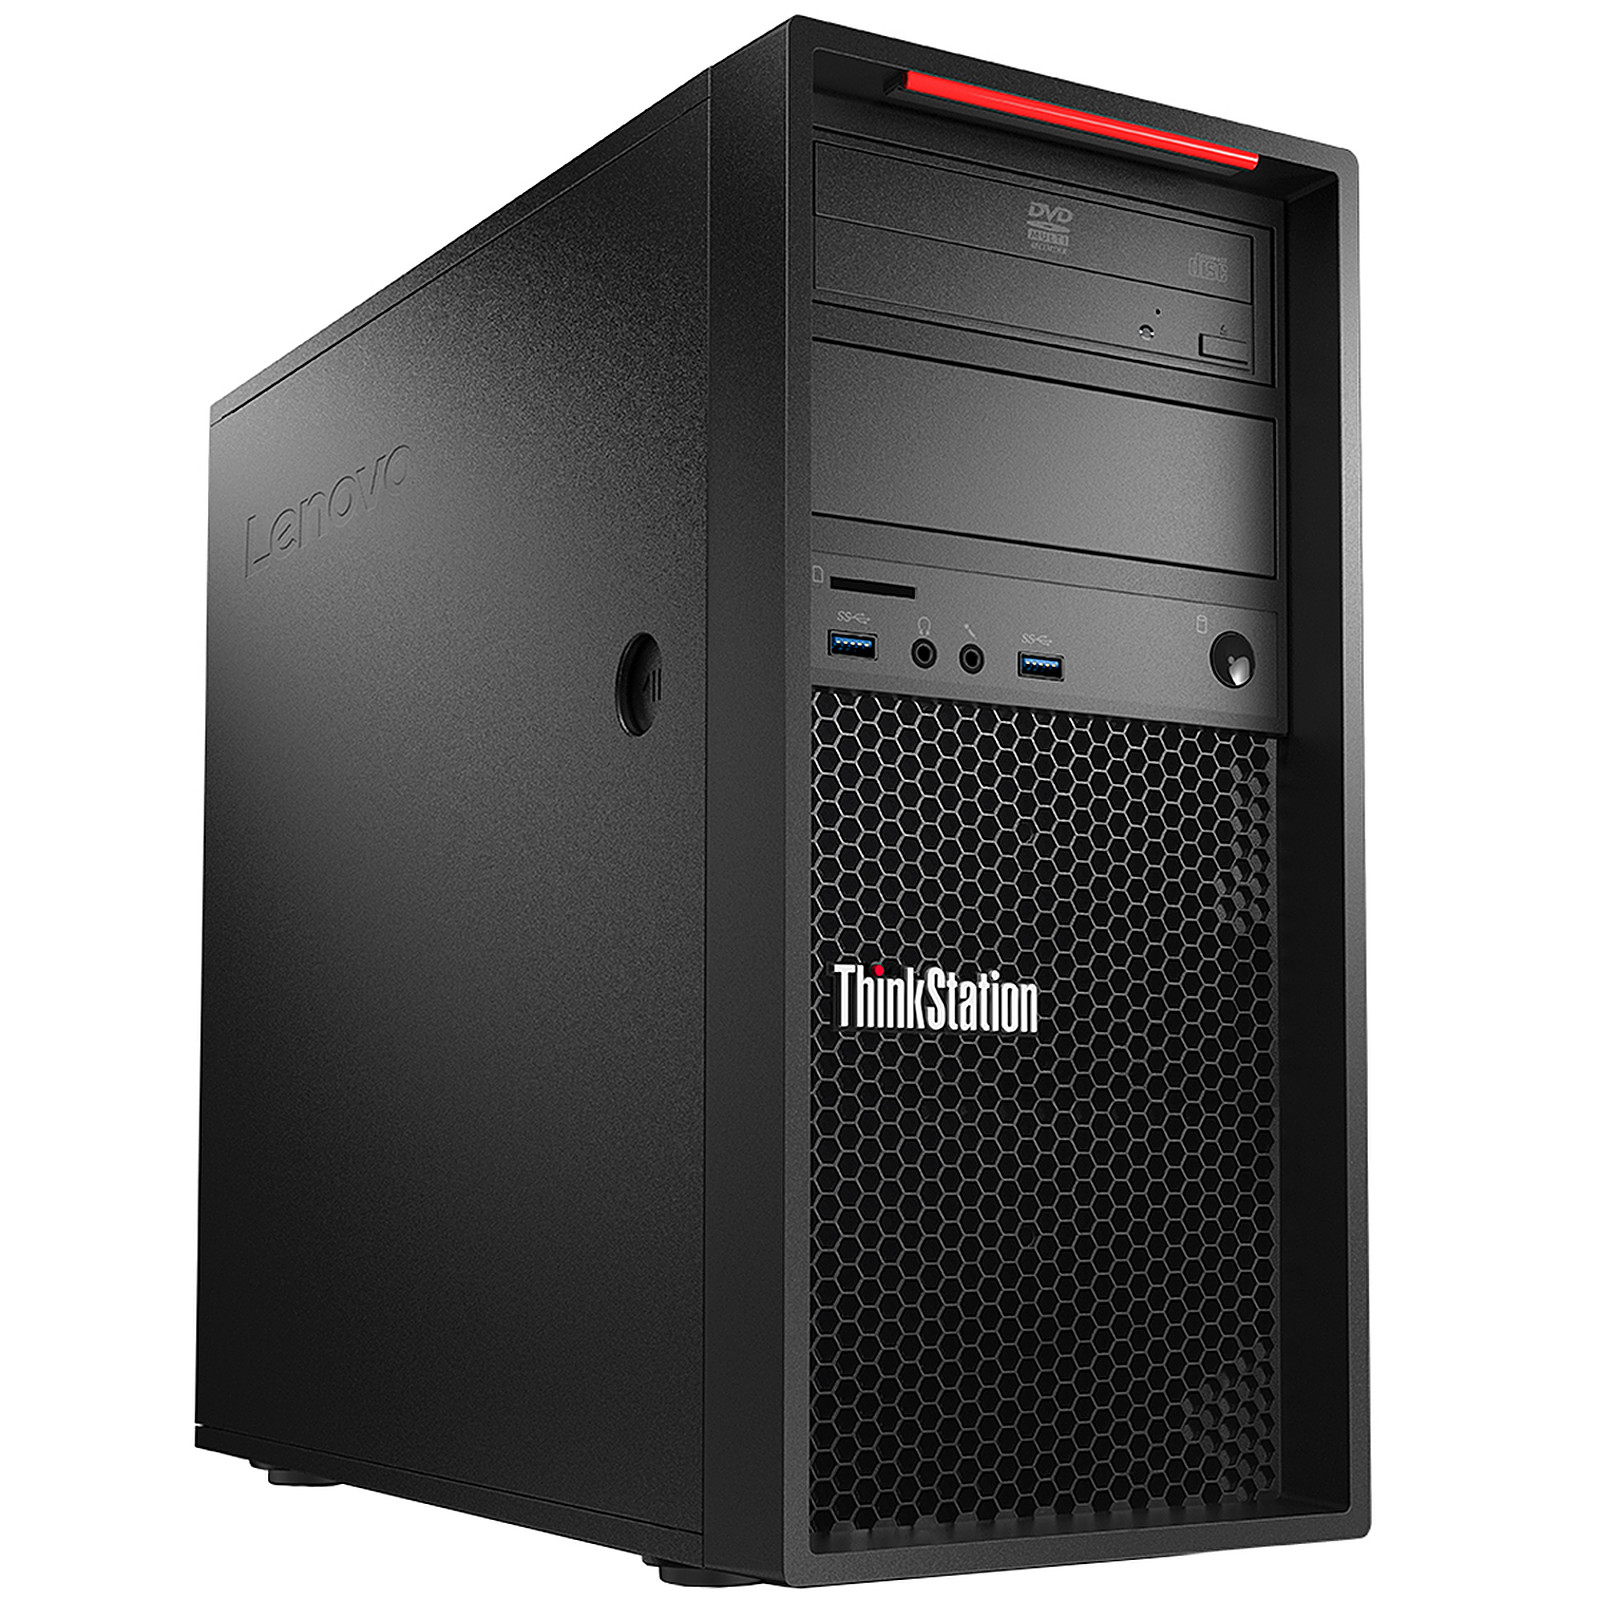 Lenovo ThinkStation P520c 30BX Tour (30BX000UFR)